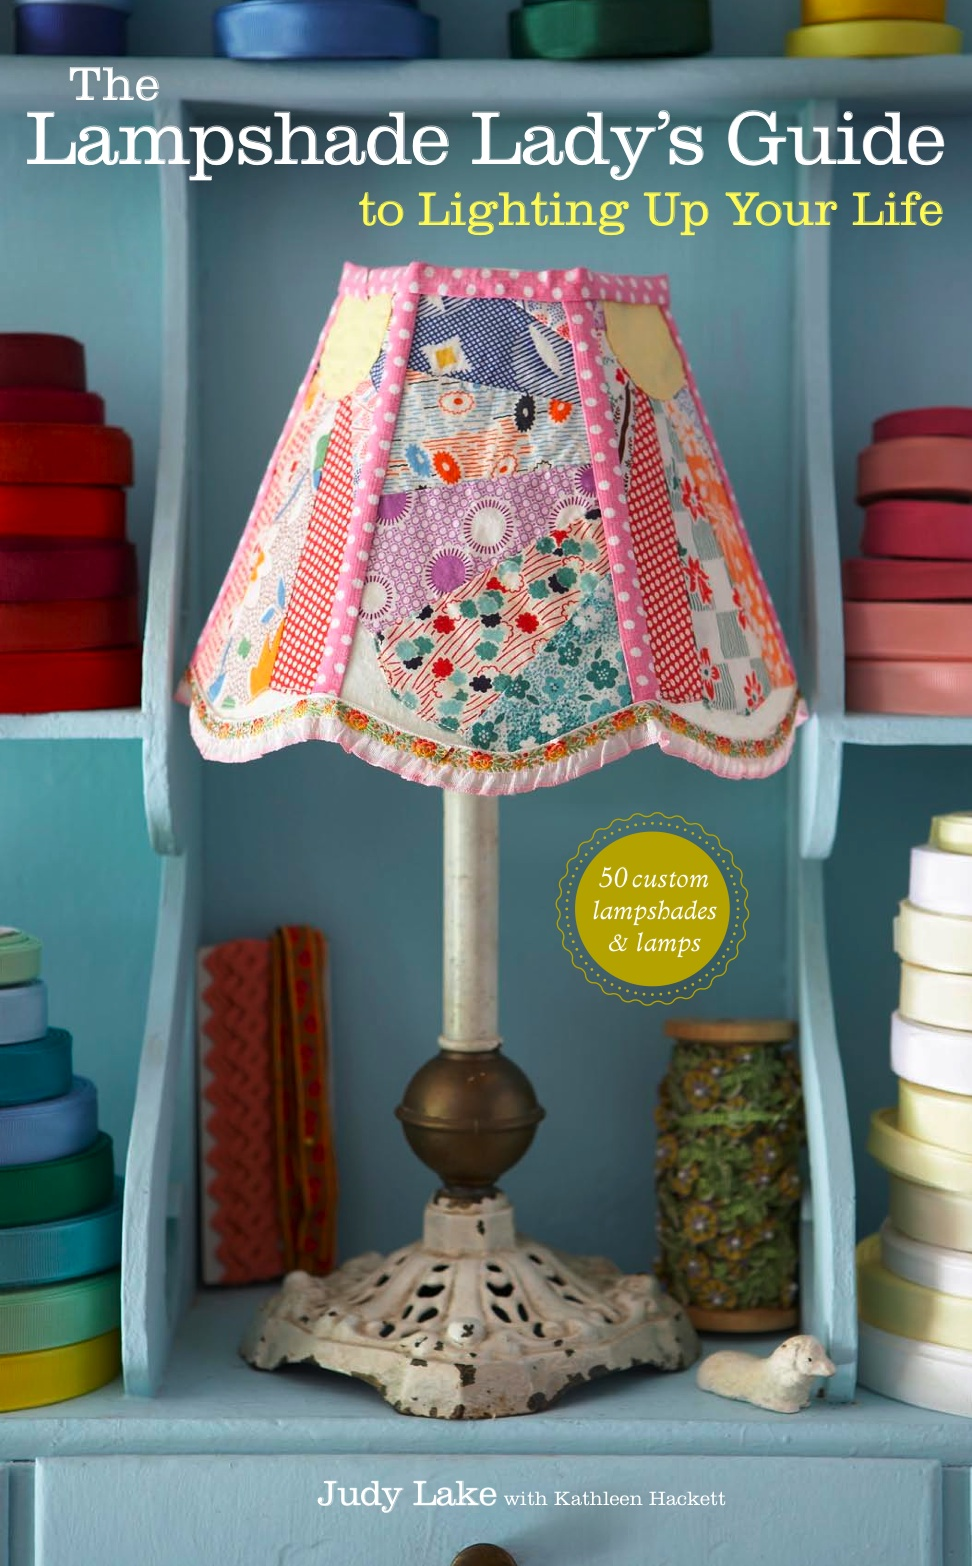 The lampshade lady blog lampshade lady book cover i am so happy to be able to show you all my first book project at last the lampshade ladys guide to lighting up your life it has utterly consumed my mozeypictures Gallery